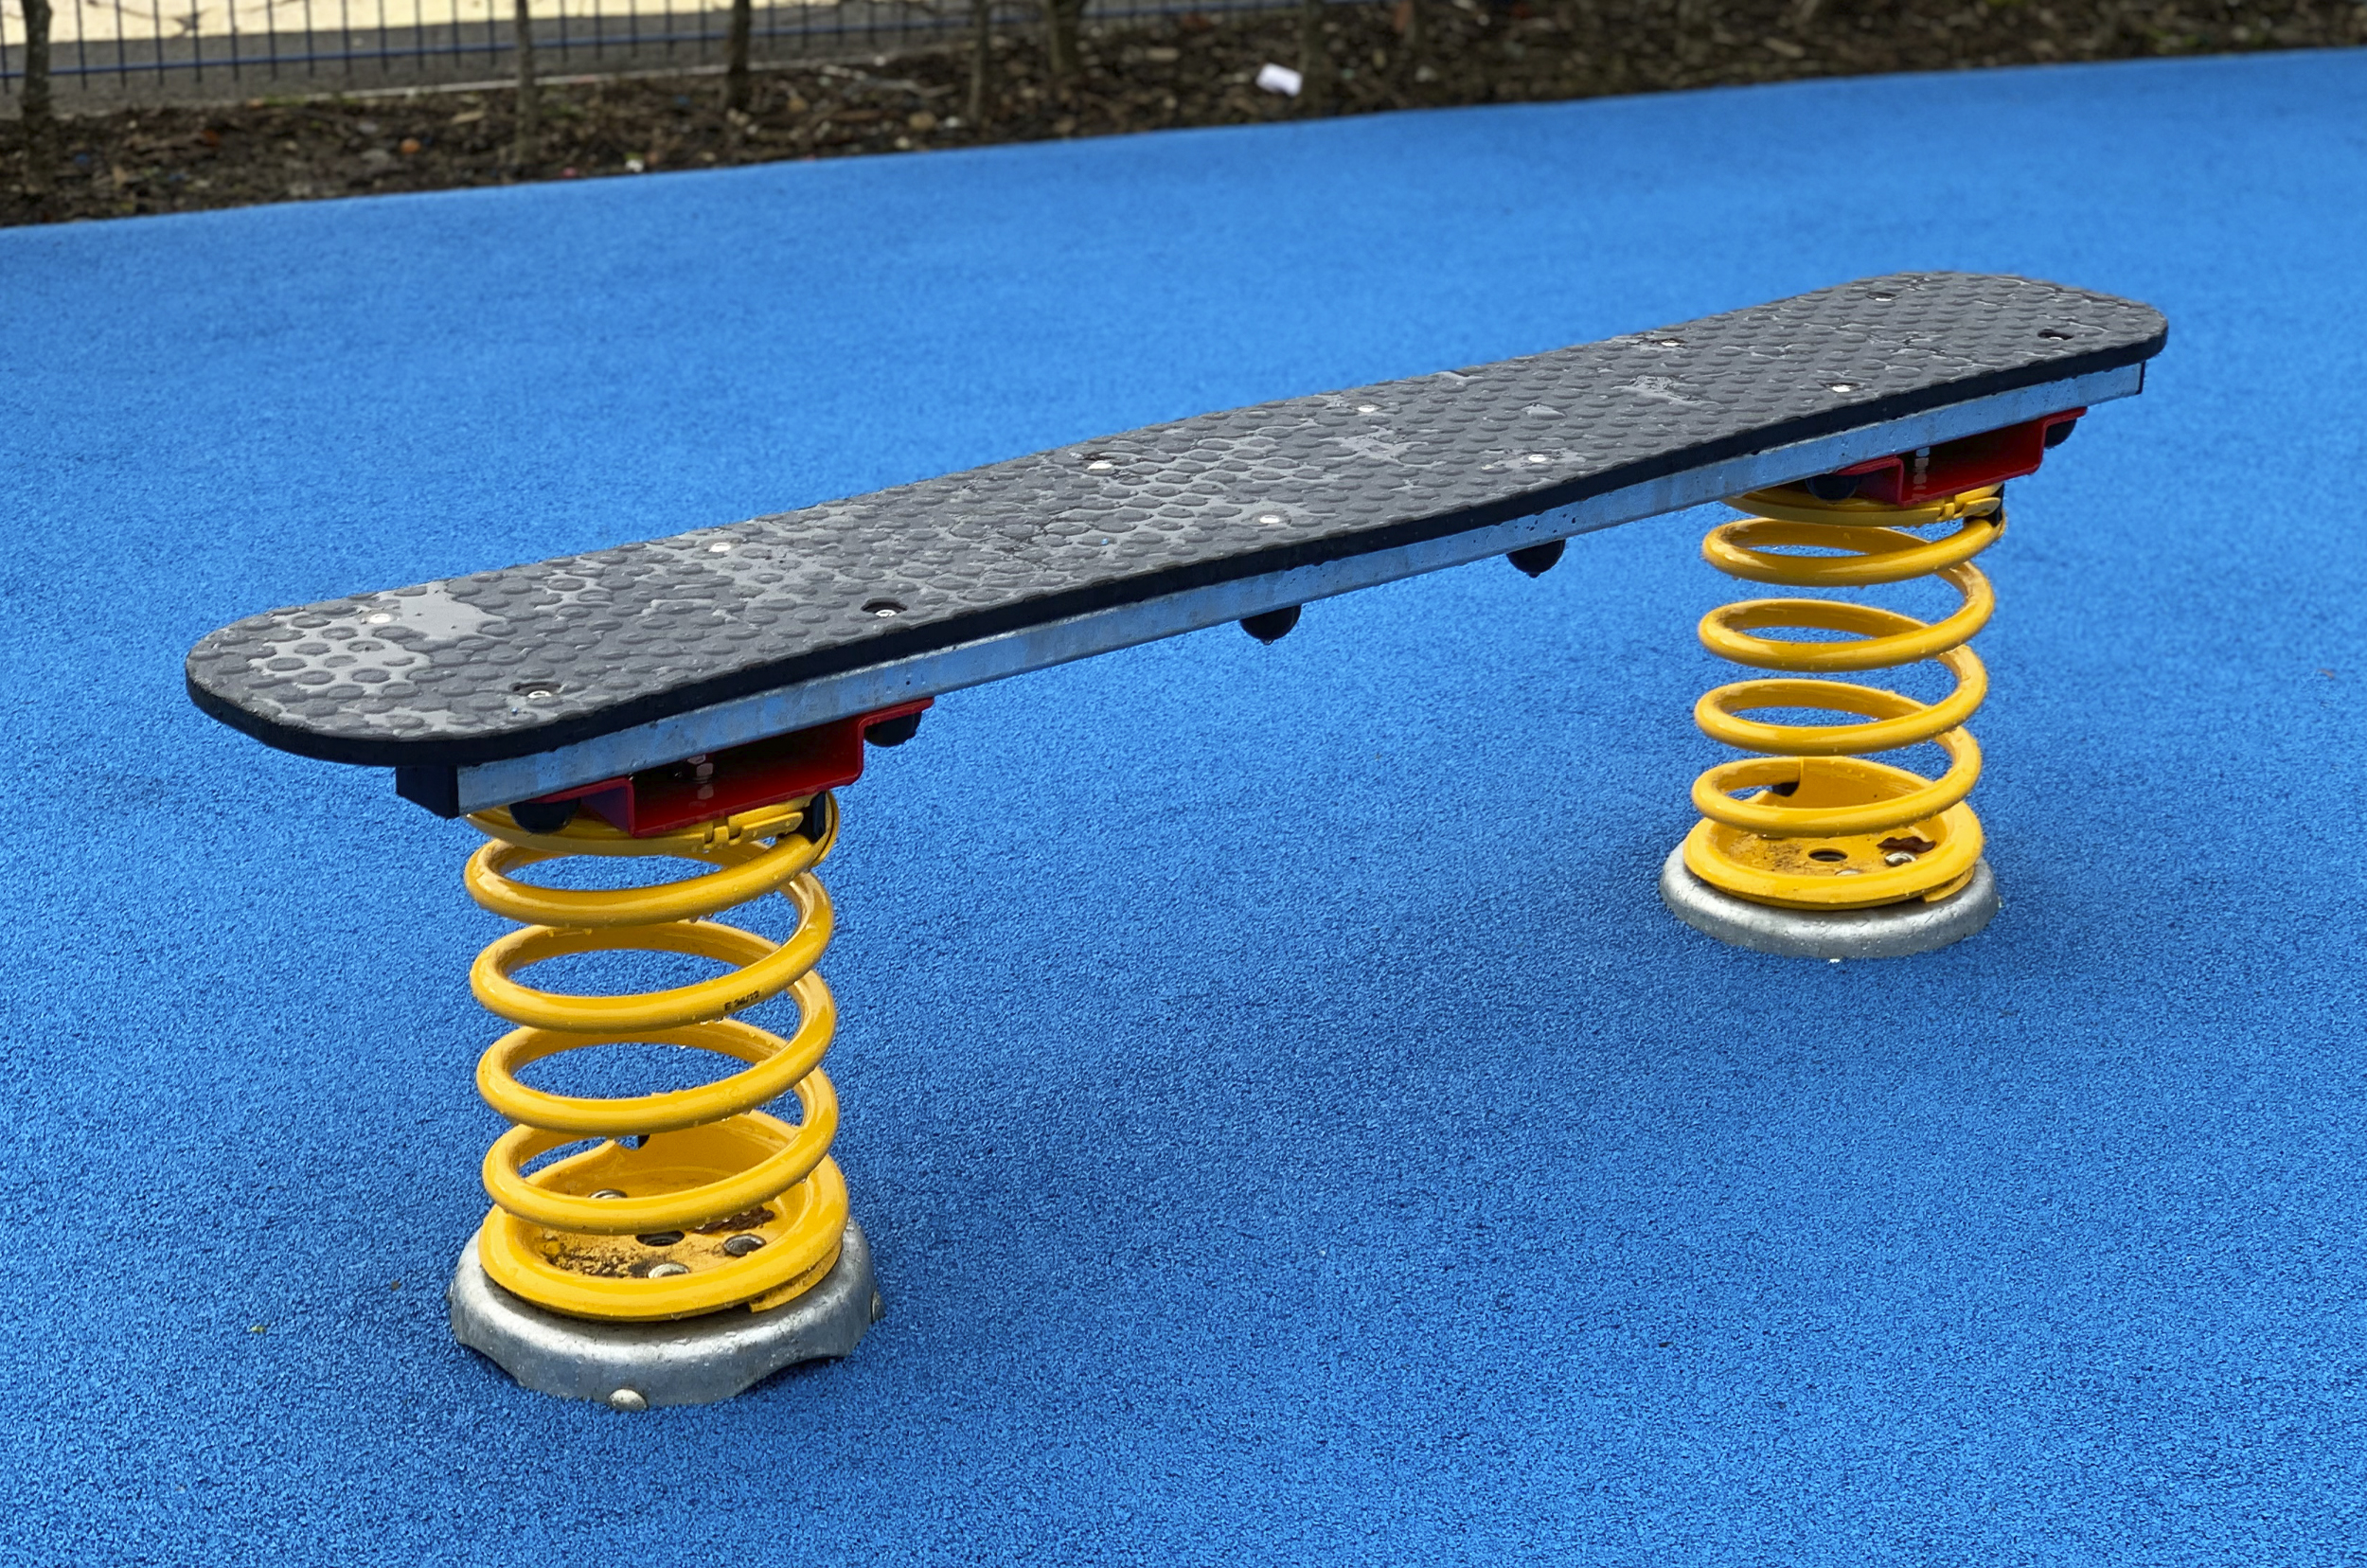 Spring Wobble Board sits on blue wetpour surface, two single yellow springs hold a grey board top